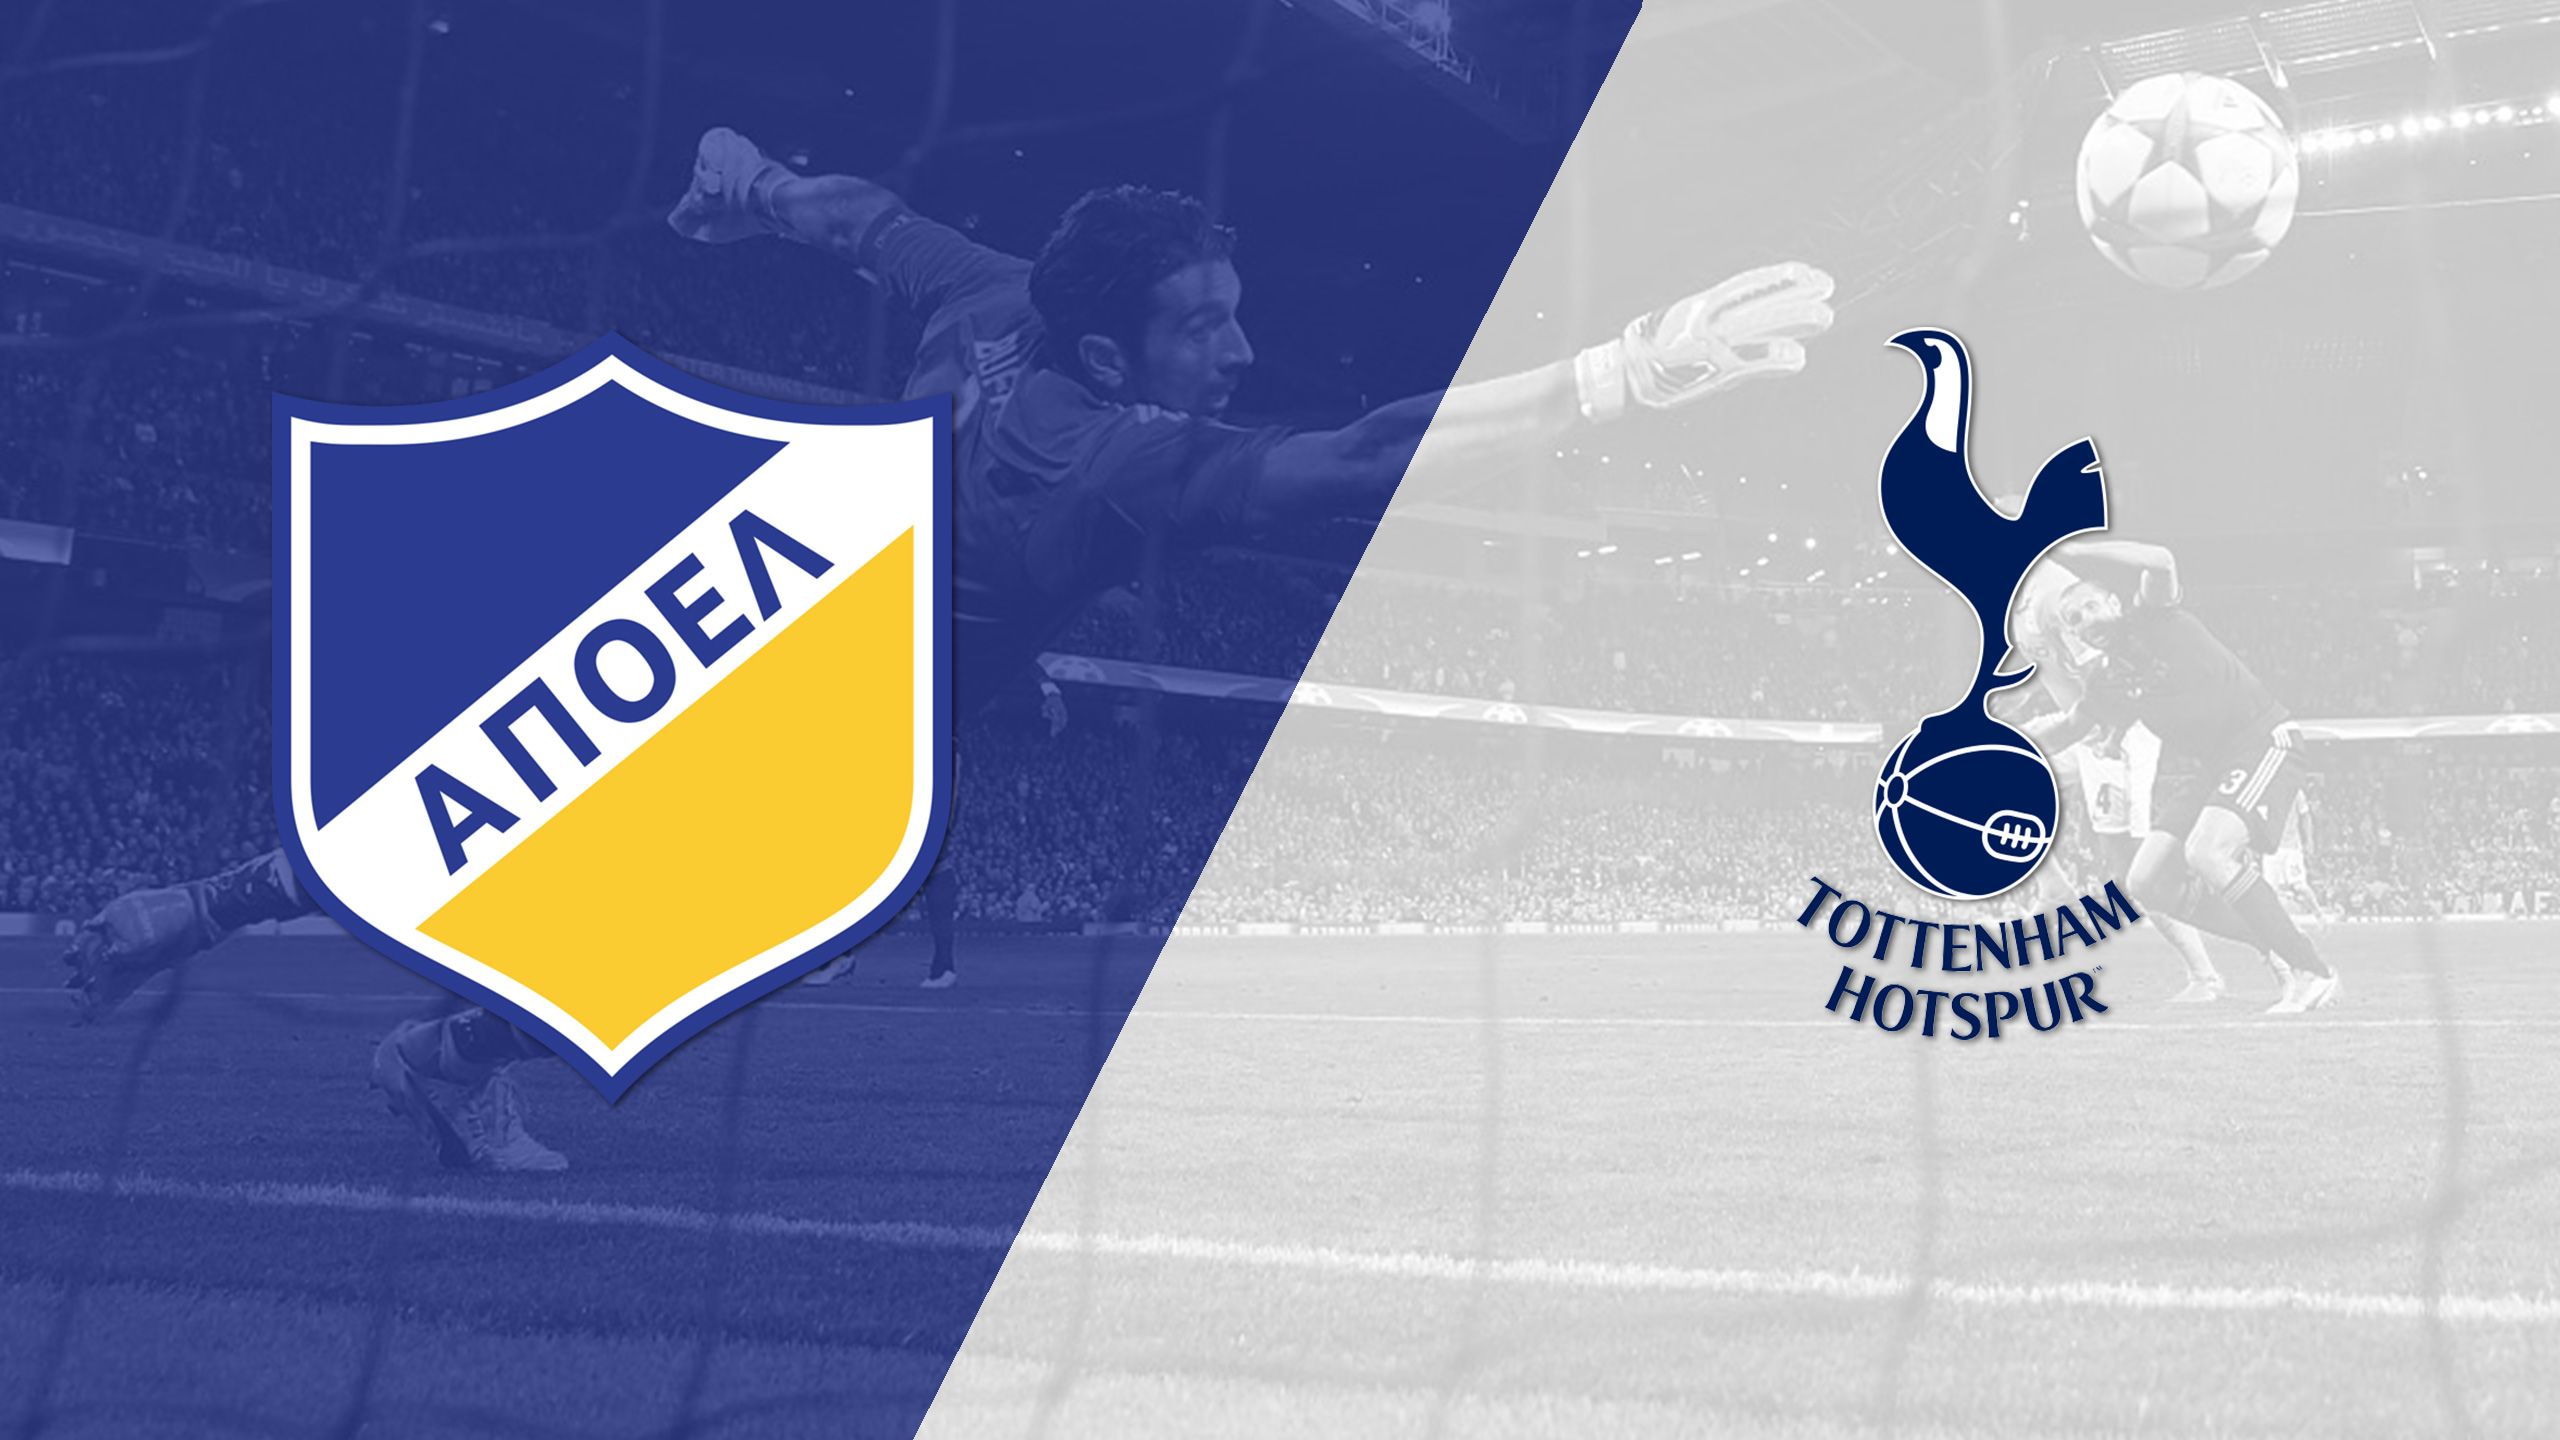 Apoel Nicosia vs. Tottenham Hotspur (Group Stage) (UEFA Champions League)